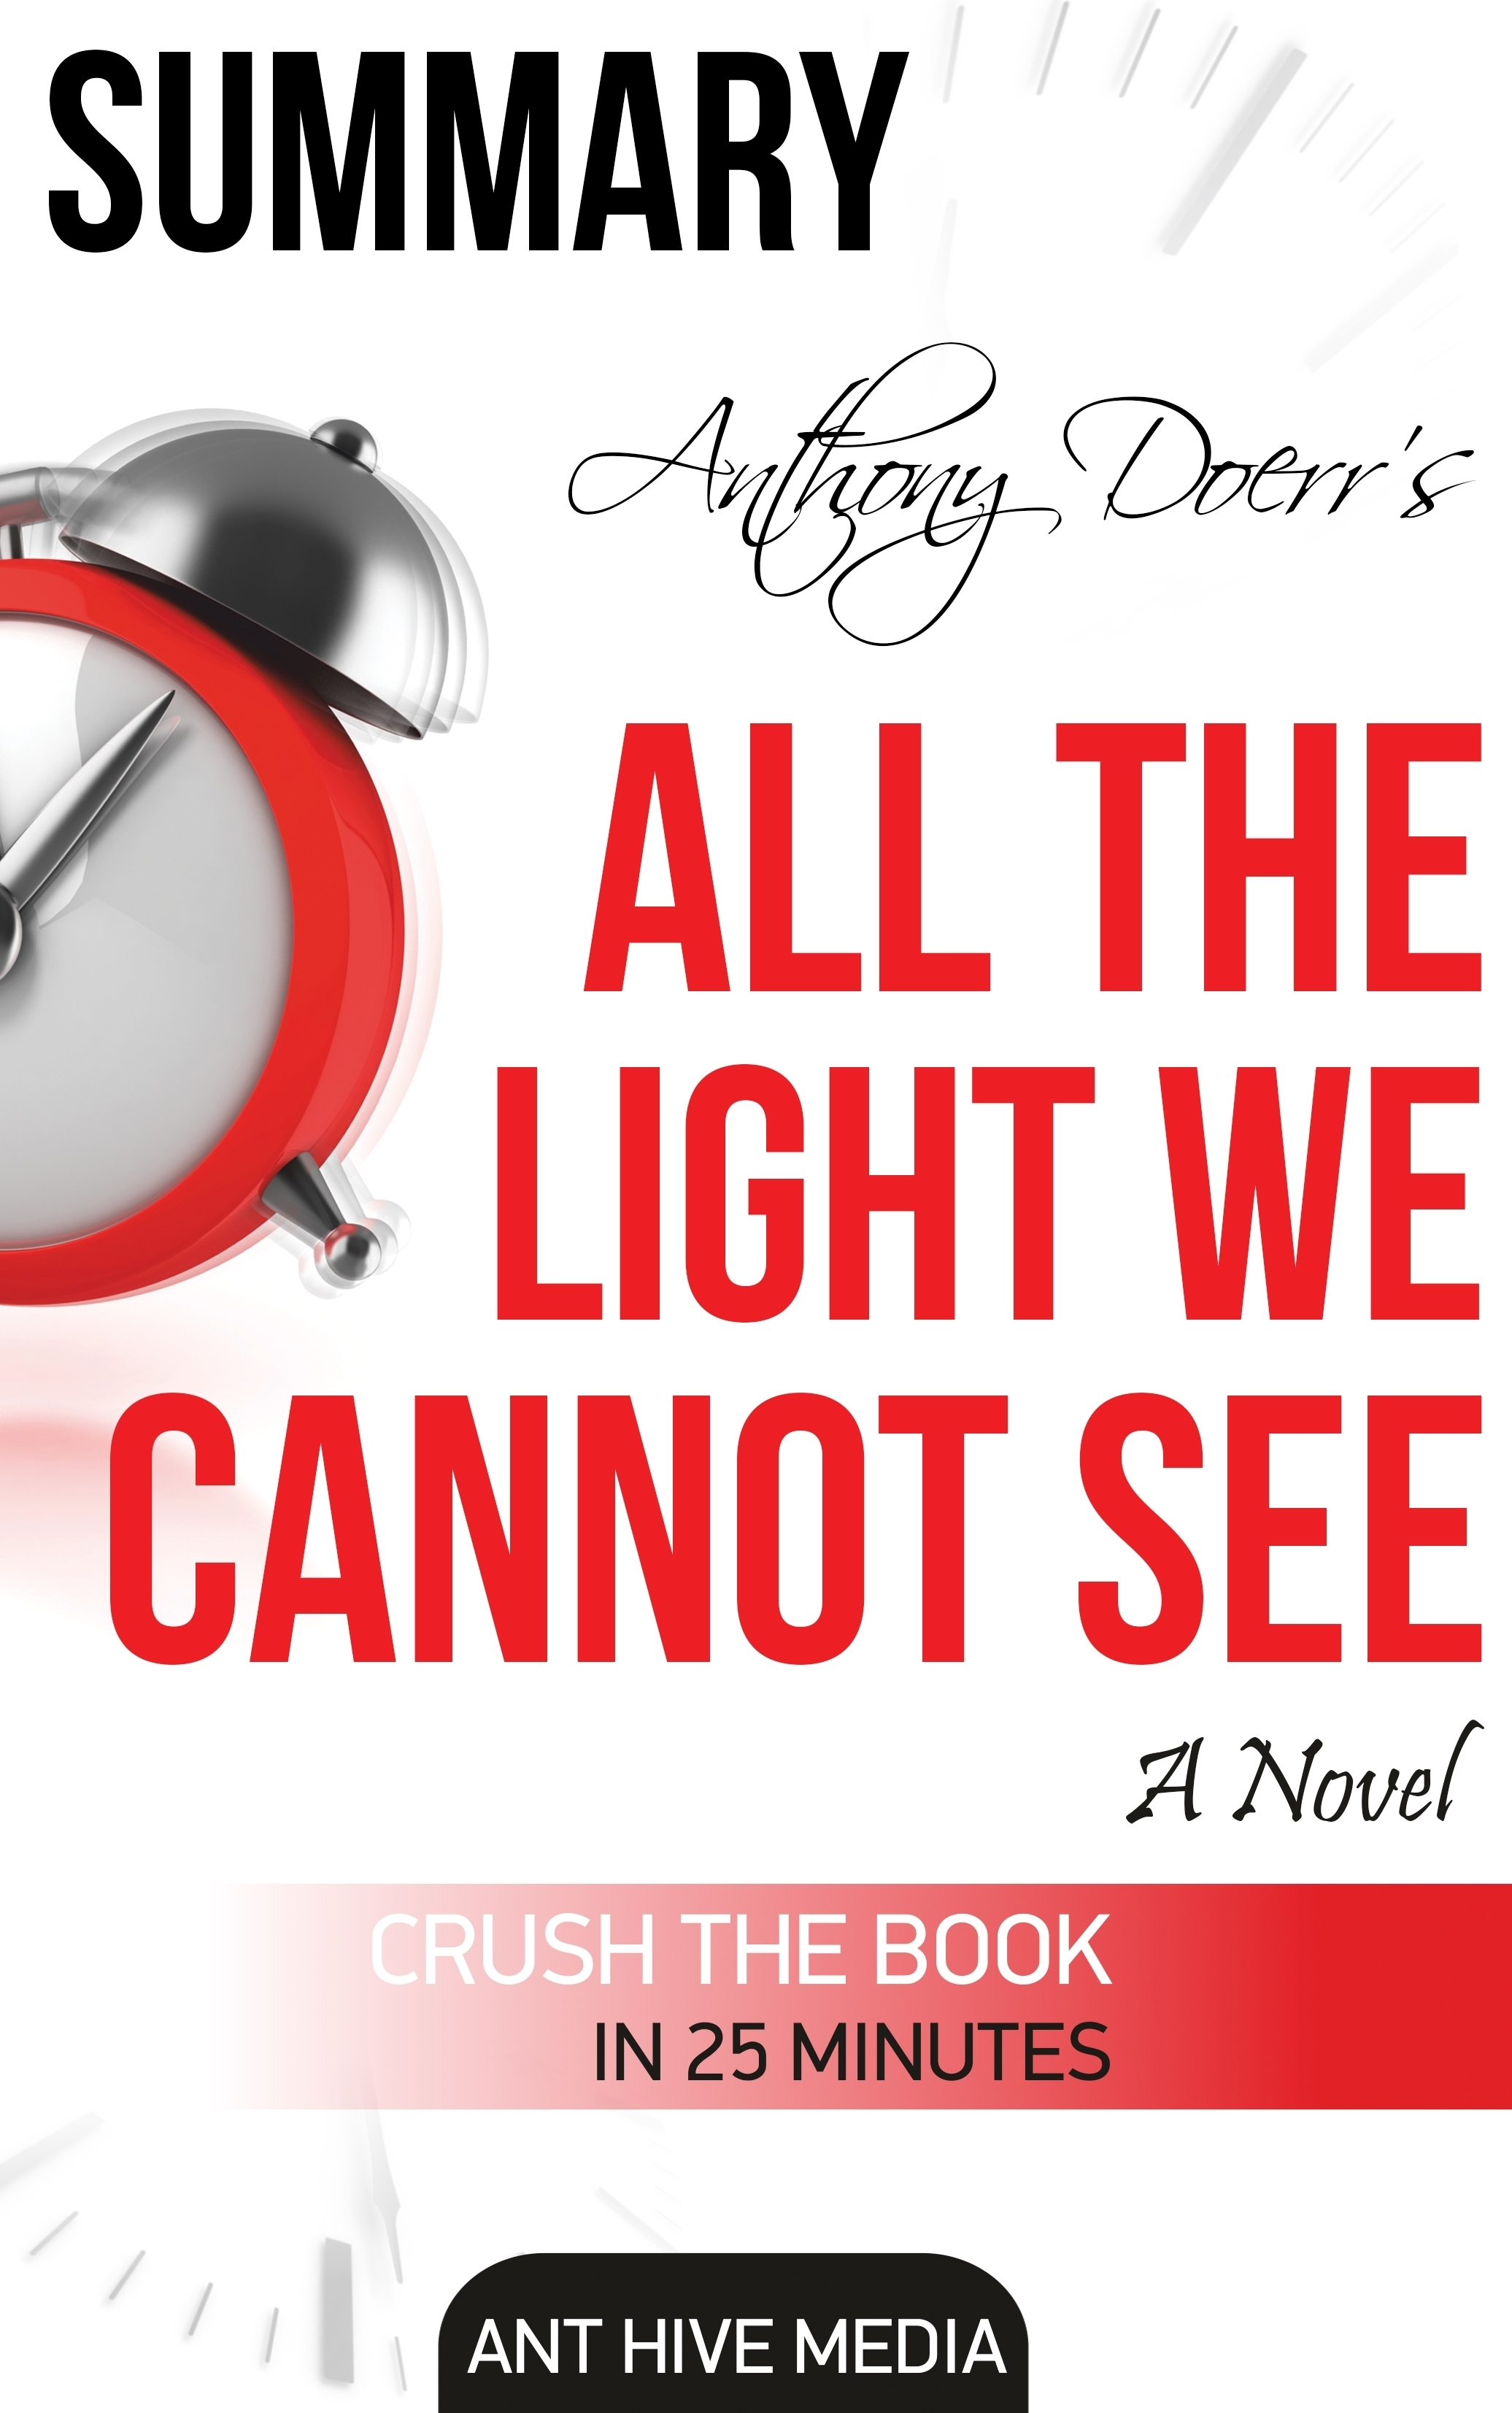 Anthony Doerr's All the Light We Cannot See A Novel Summary